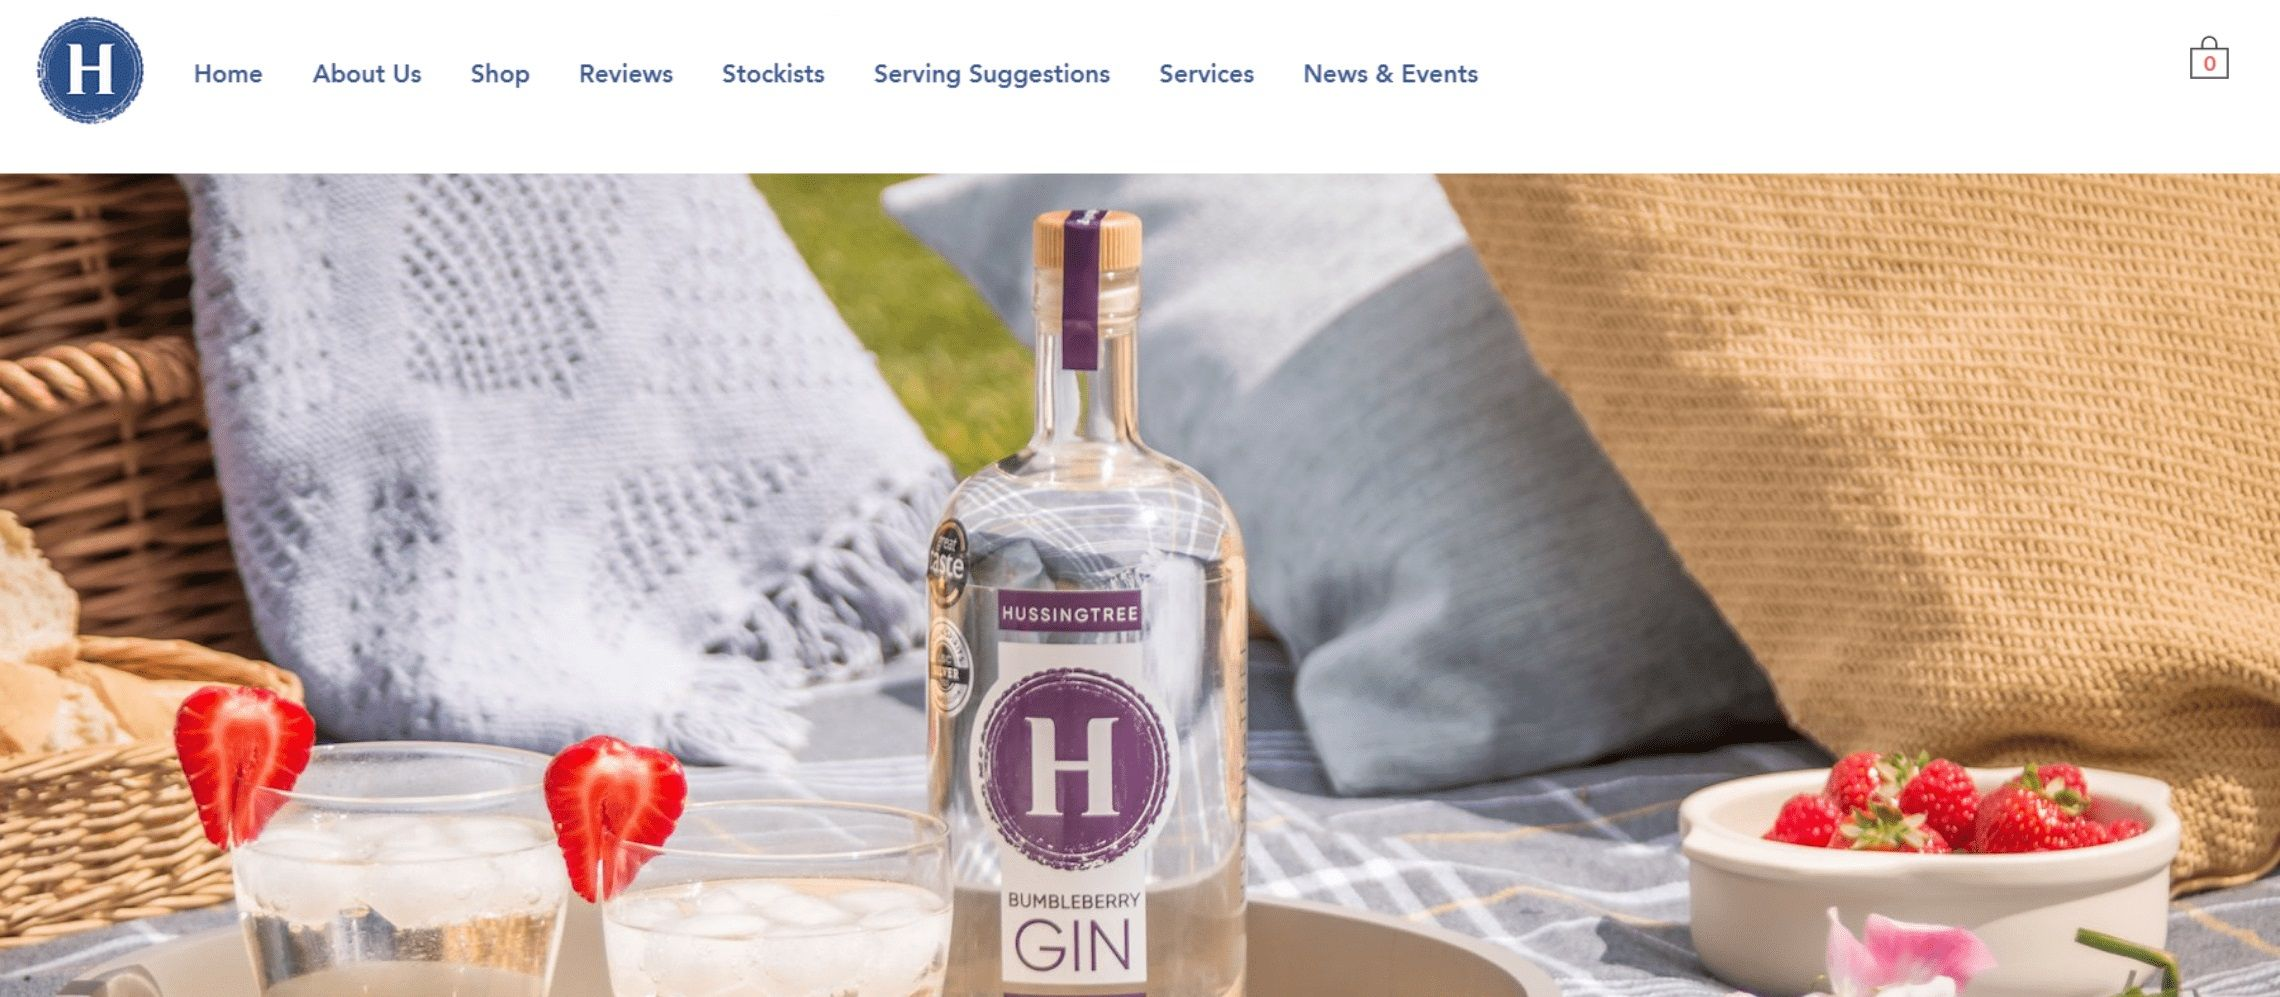 Photo for: Hussingtree Gin Wins Silver And Bronze At London Spirits Competition